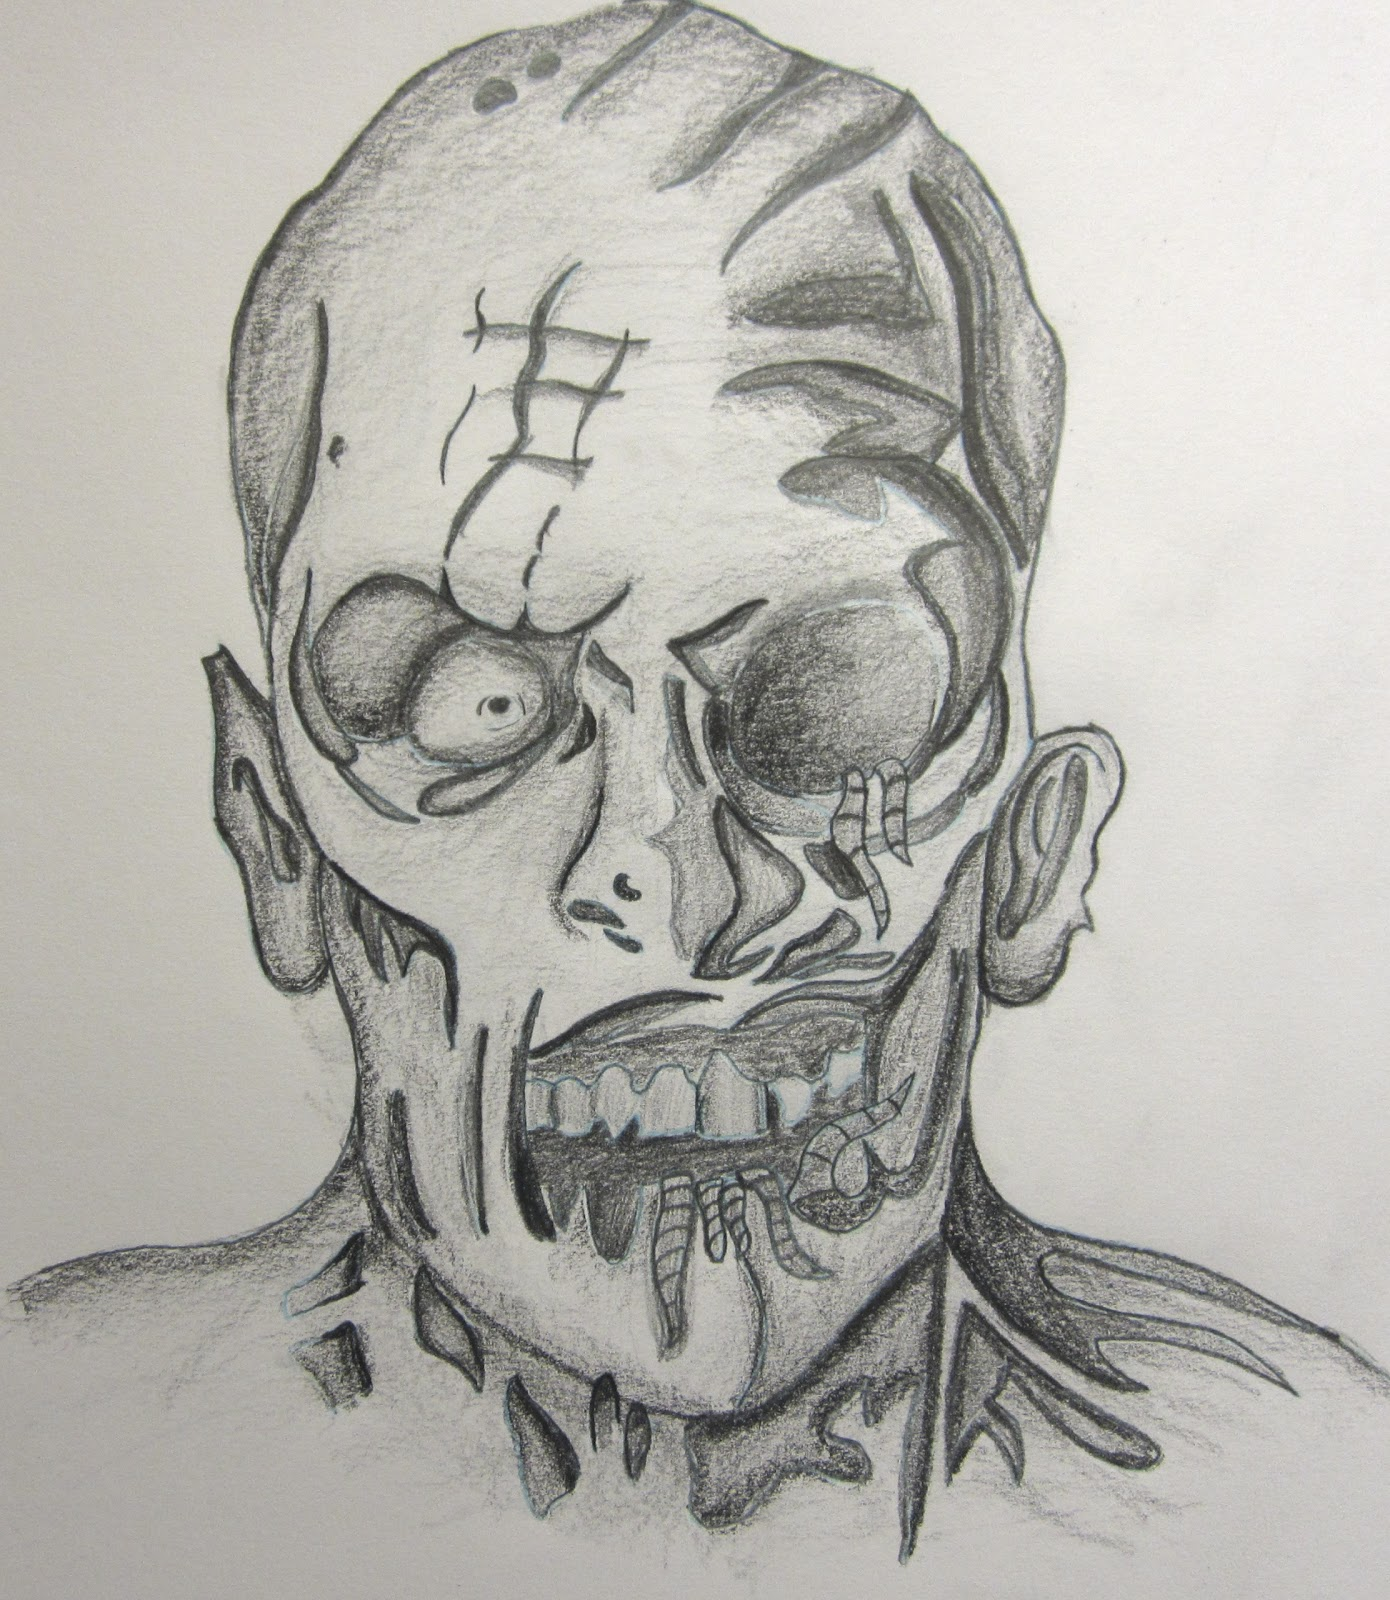 Posted by Graeme Nishida at 10 37 AMZombie Face Drawing